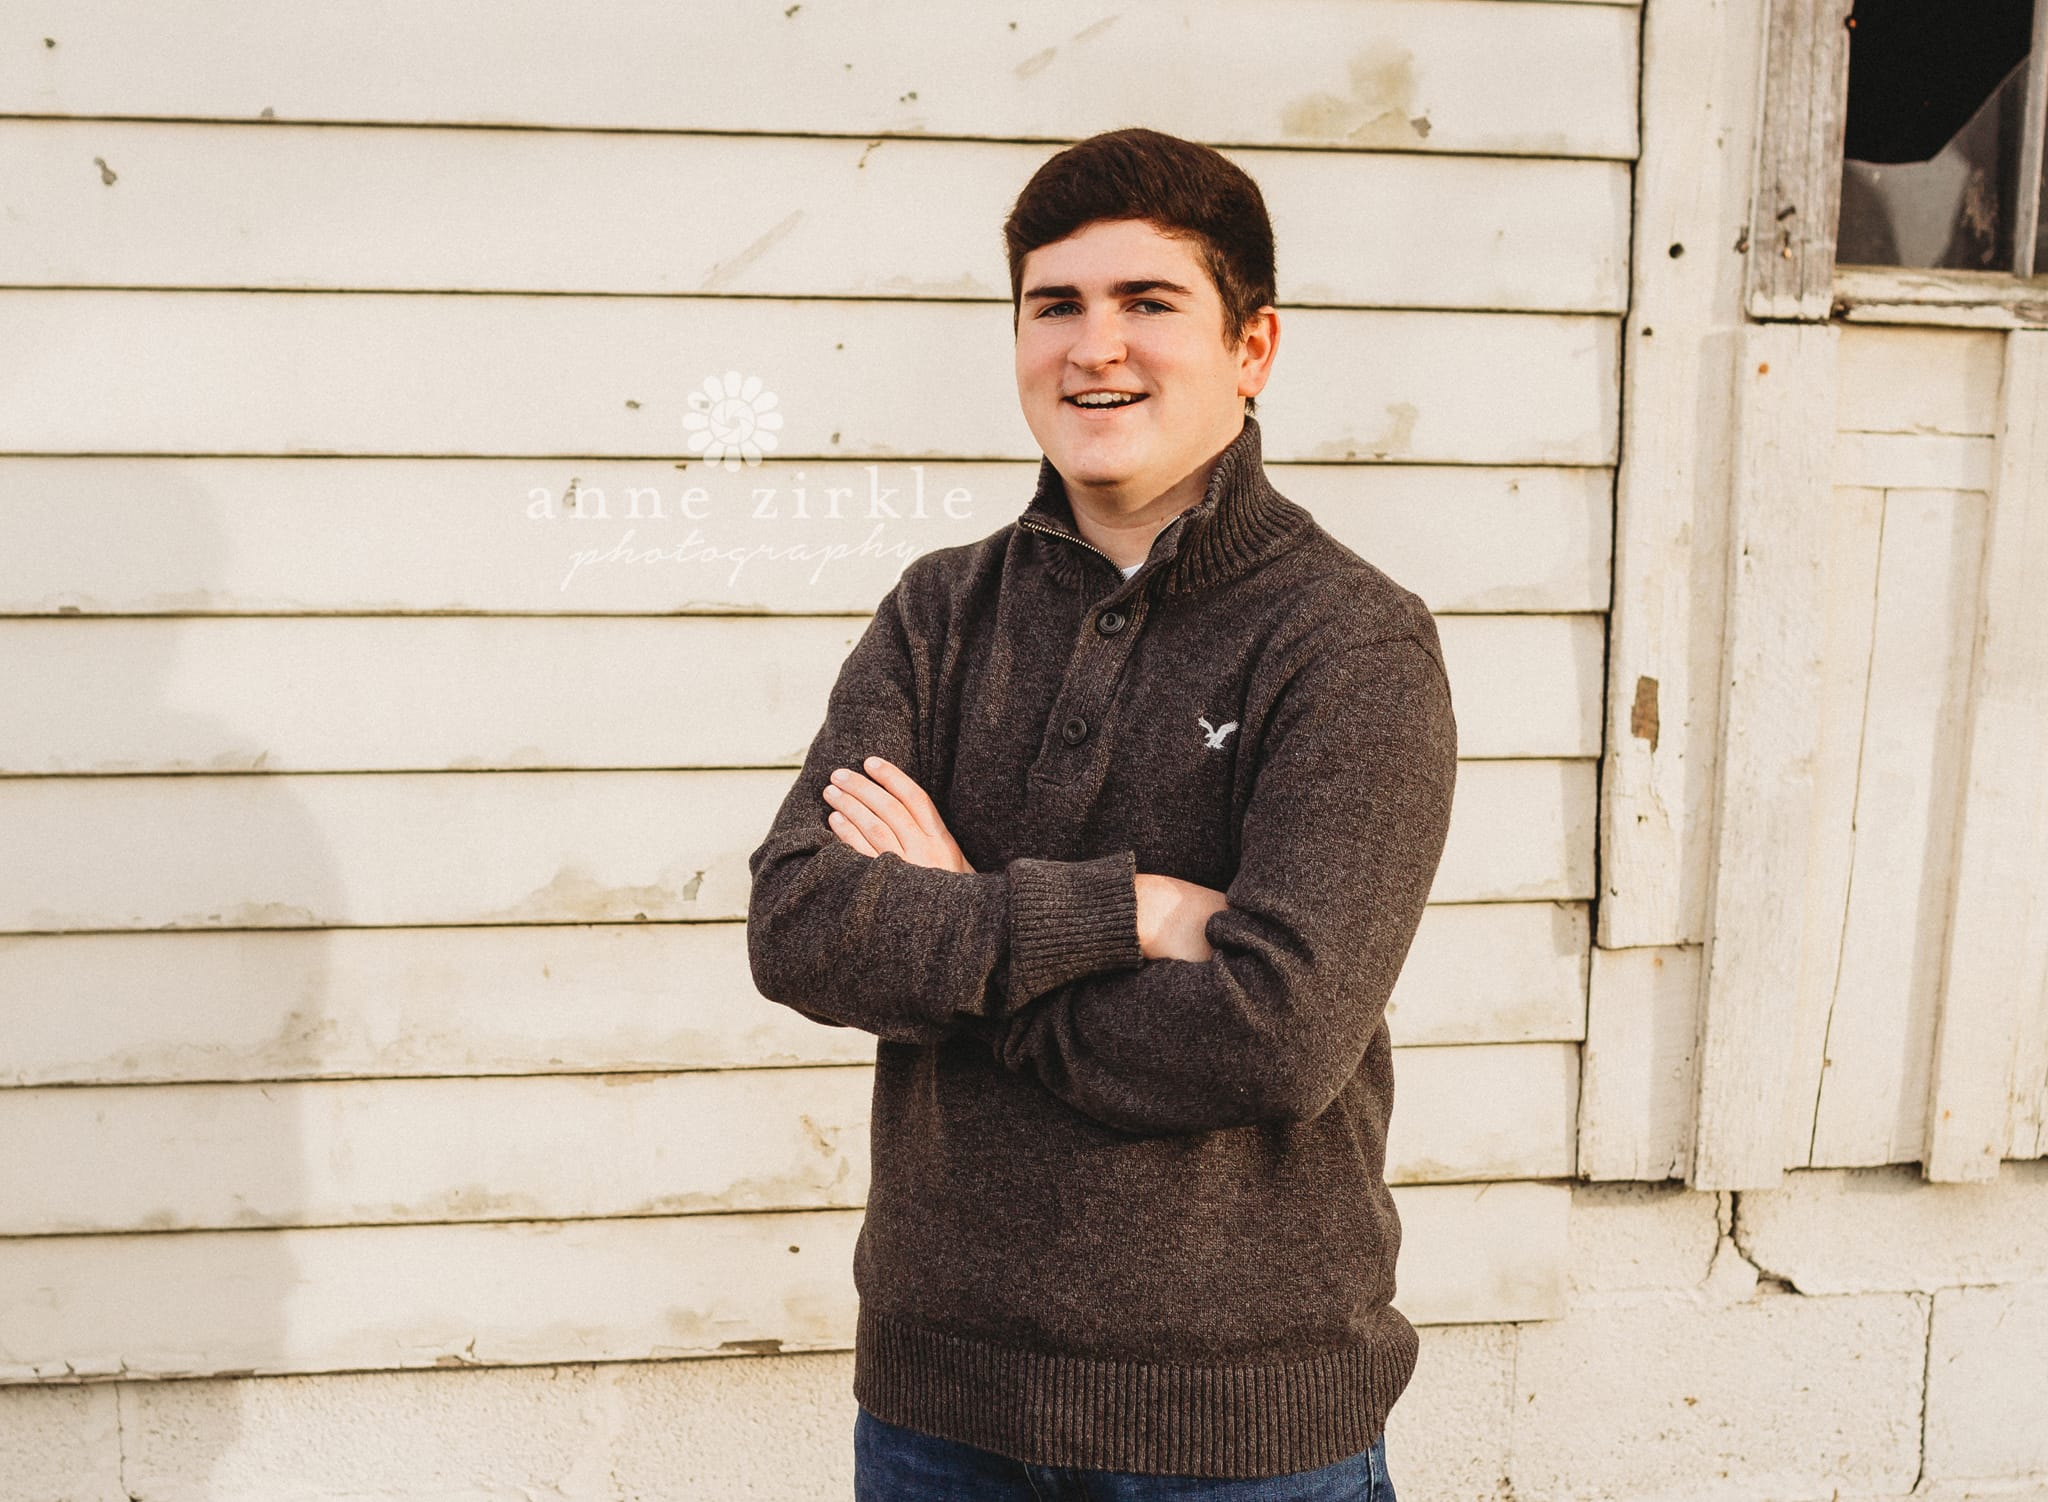 senior boy and old building #mooresville #northcarolina #davidson #lakenorman #southiredell #pinelakeprep #highschool #highschoolsenior #highschoolseniors #seniors